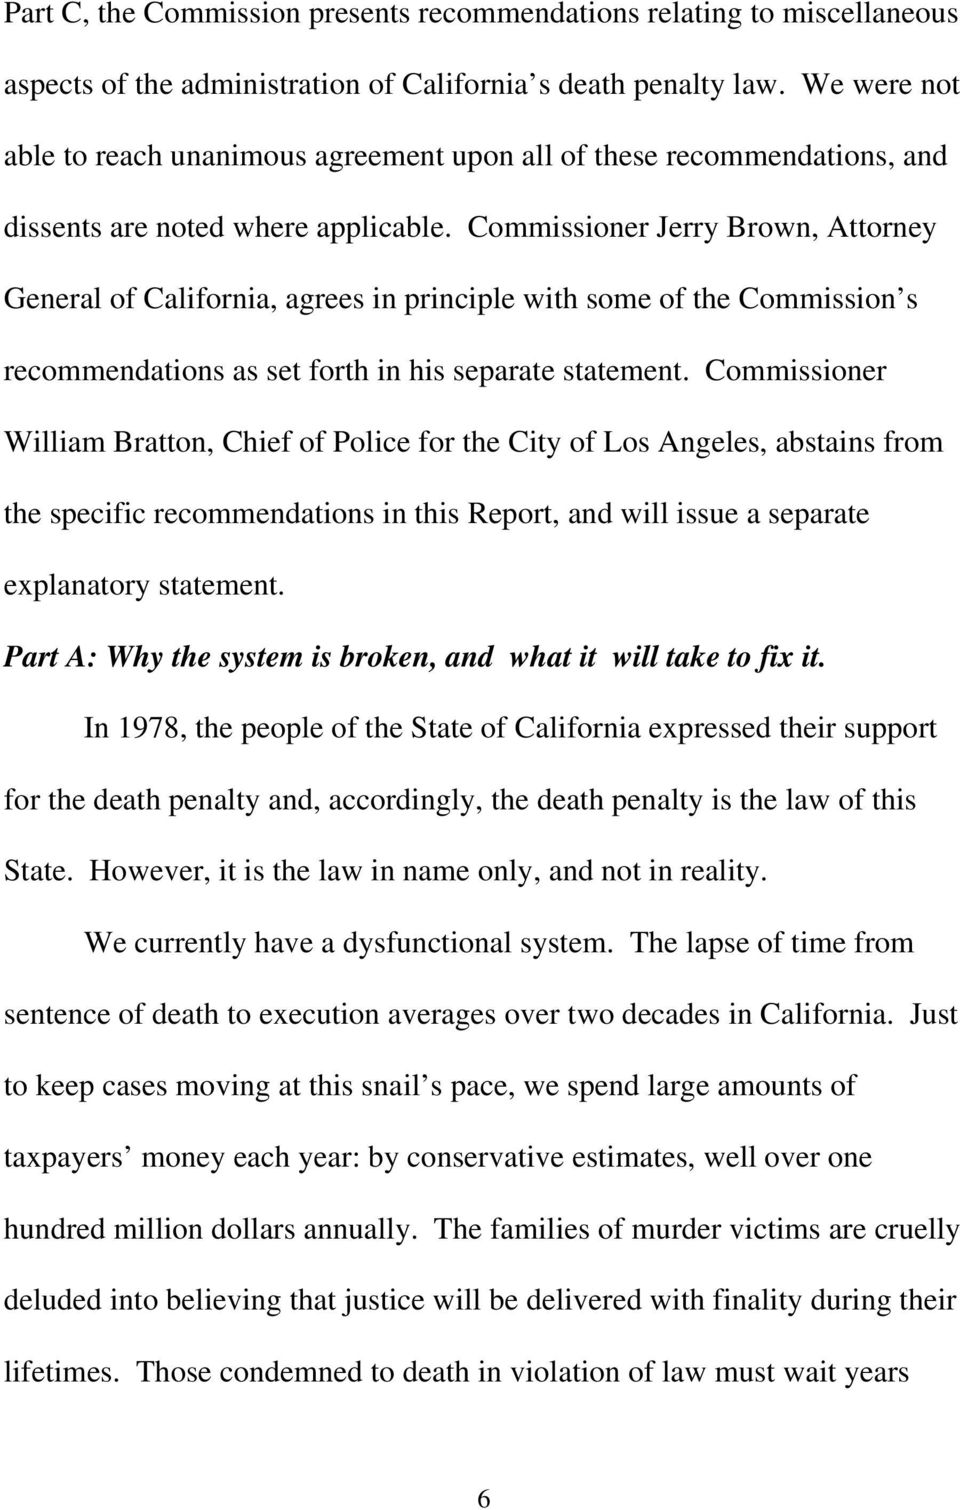 Commissioner Jerry Brown, Attorney General of California, agrees in principle with some of the Commission s recommendations as set forth in his separate statement.